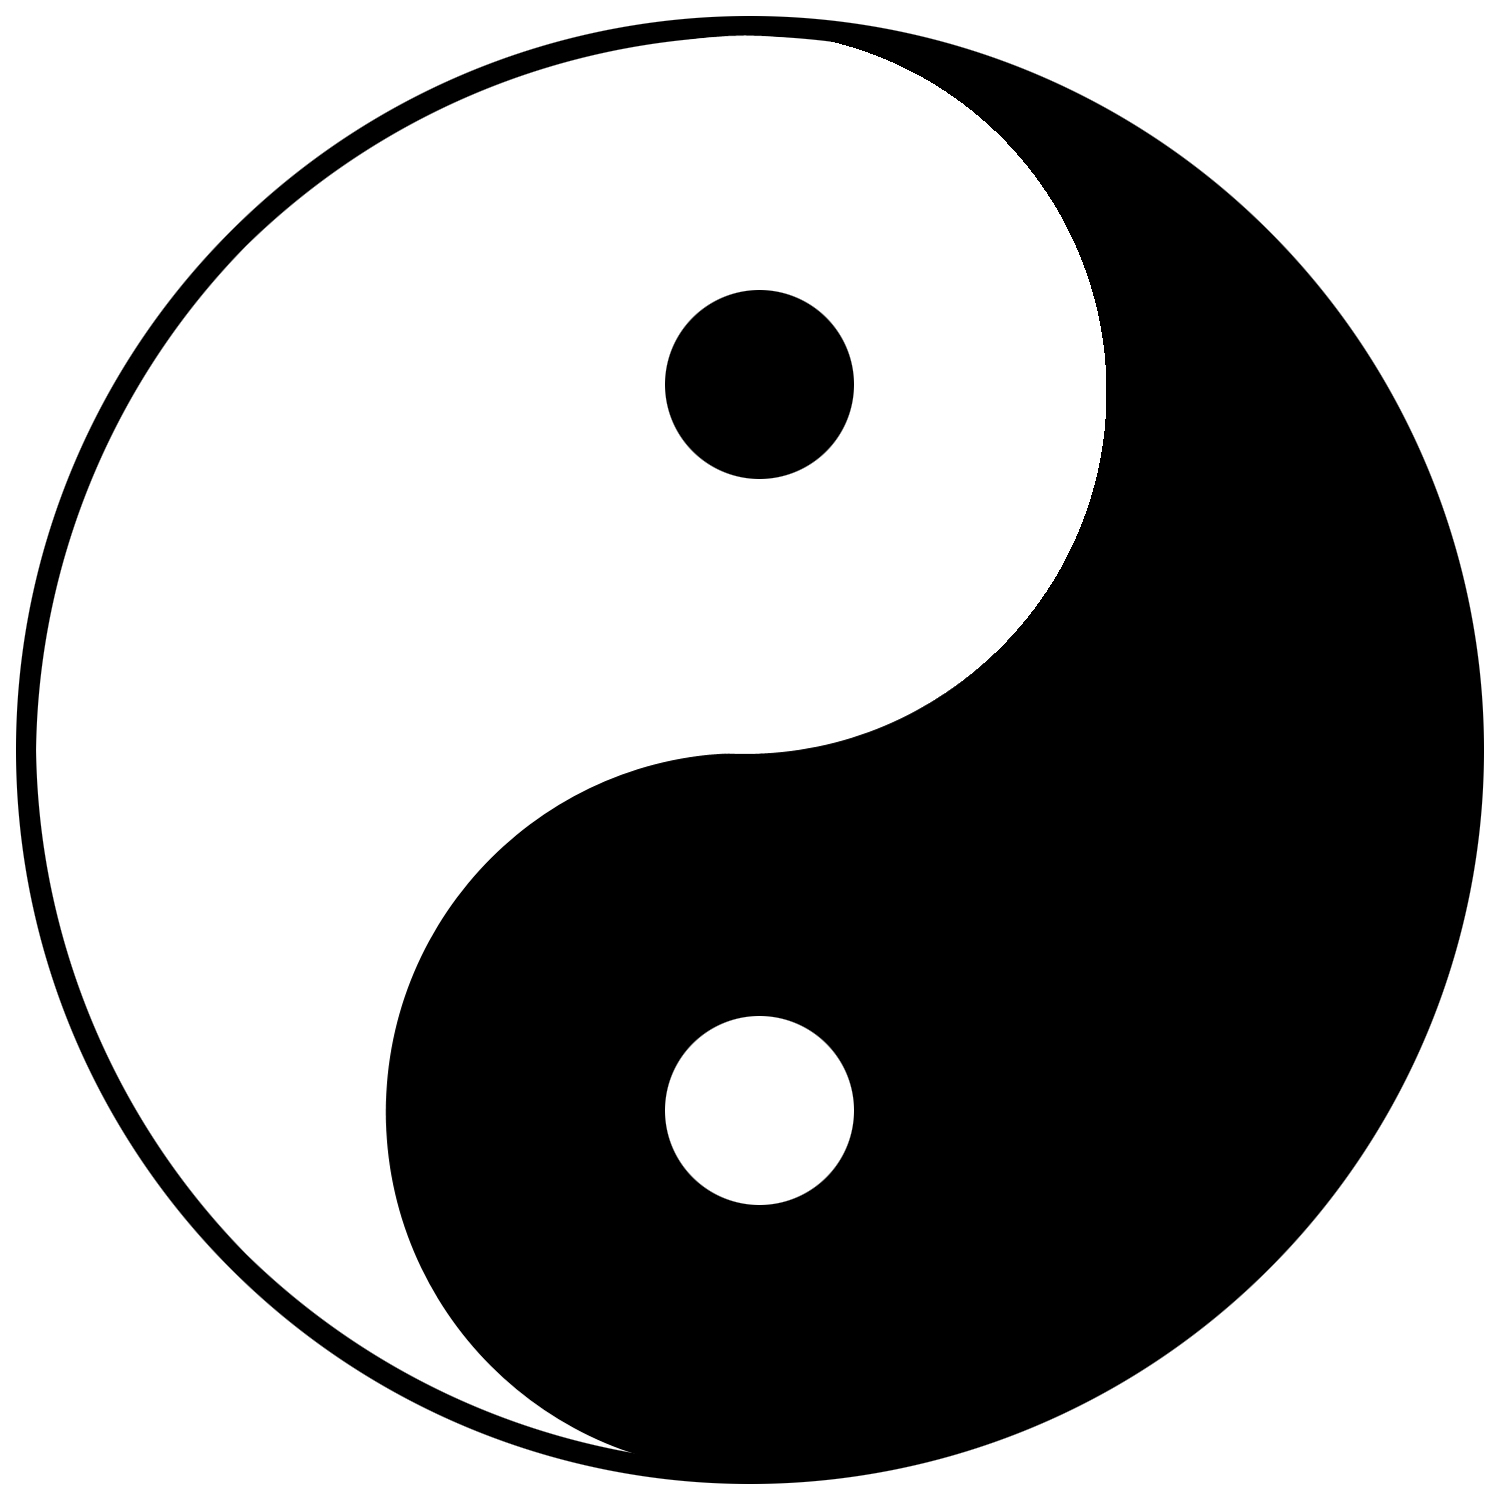 Kung Fu Panda Wallpapers With Quotes File Ying Yang Sign Jpg Wikimedia Commons